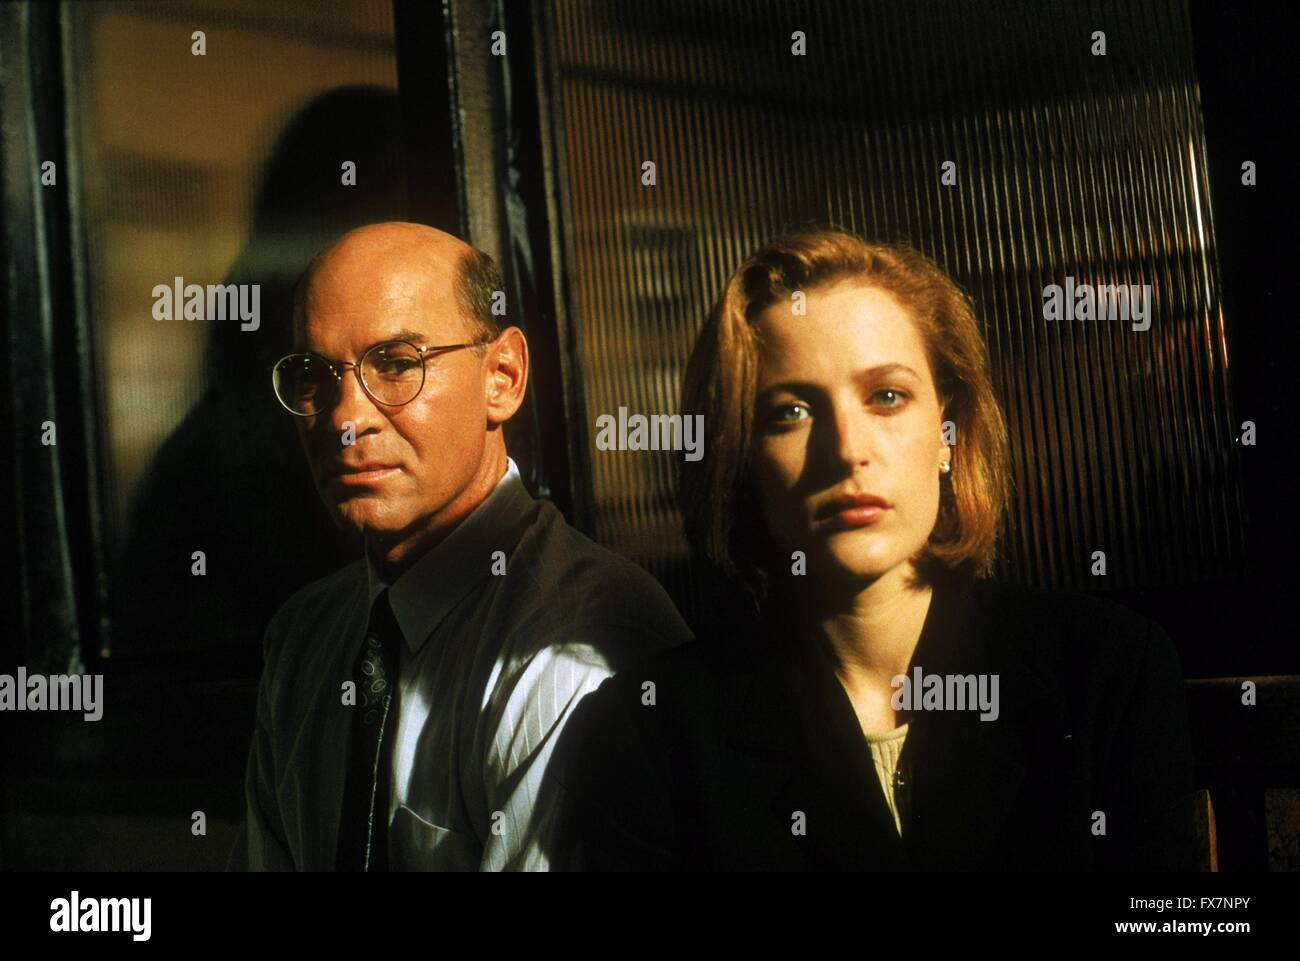 The X Files TV Series 1993 - 2002 USA 1996 Season 4 Created by Chris Carter Mitch Pileggi, , Gillian Anderson - Stock Image